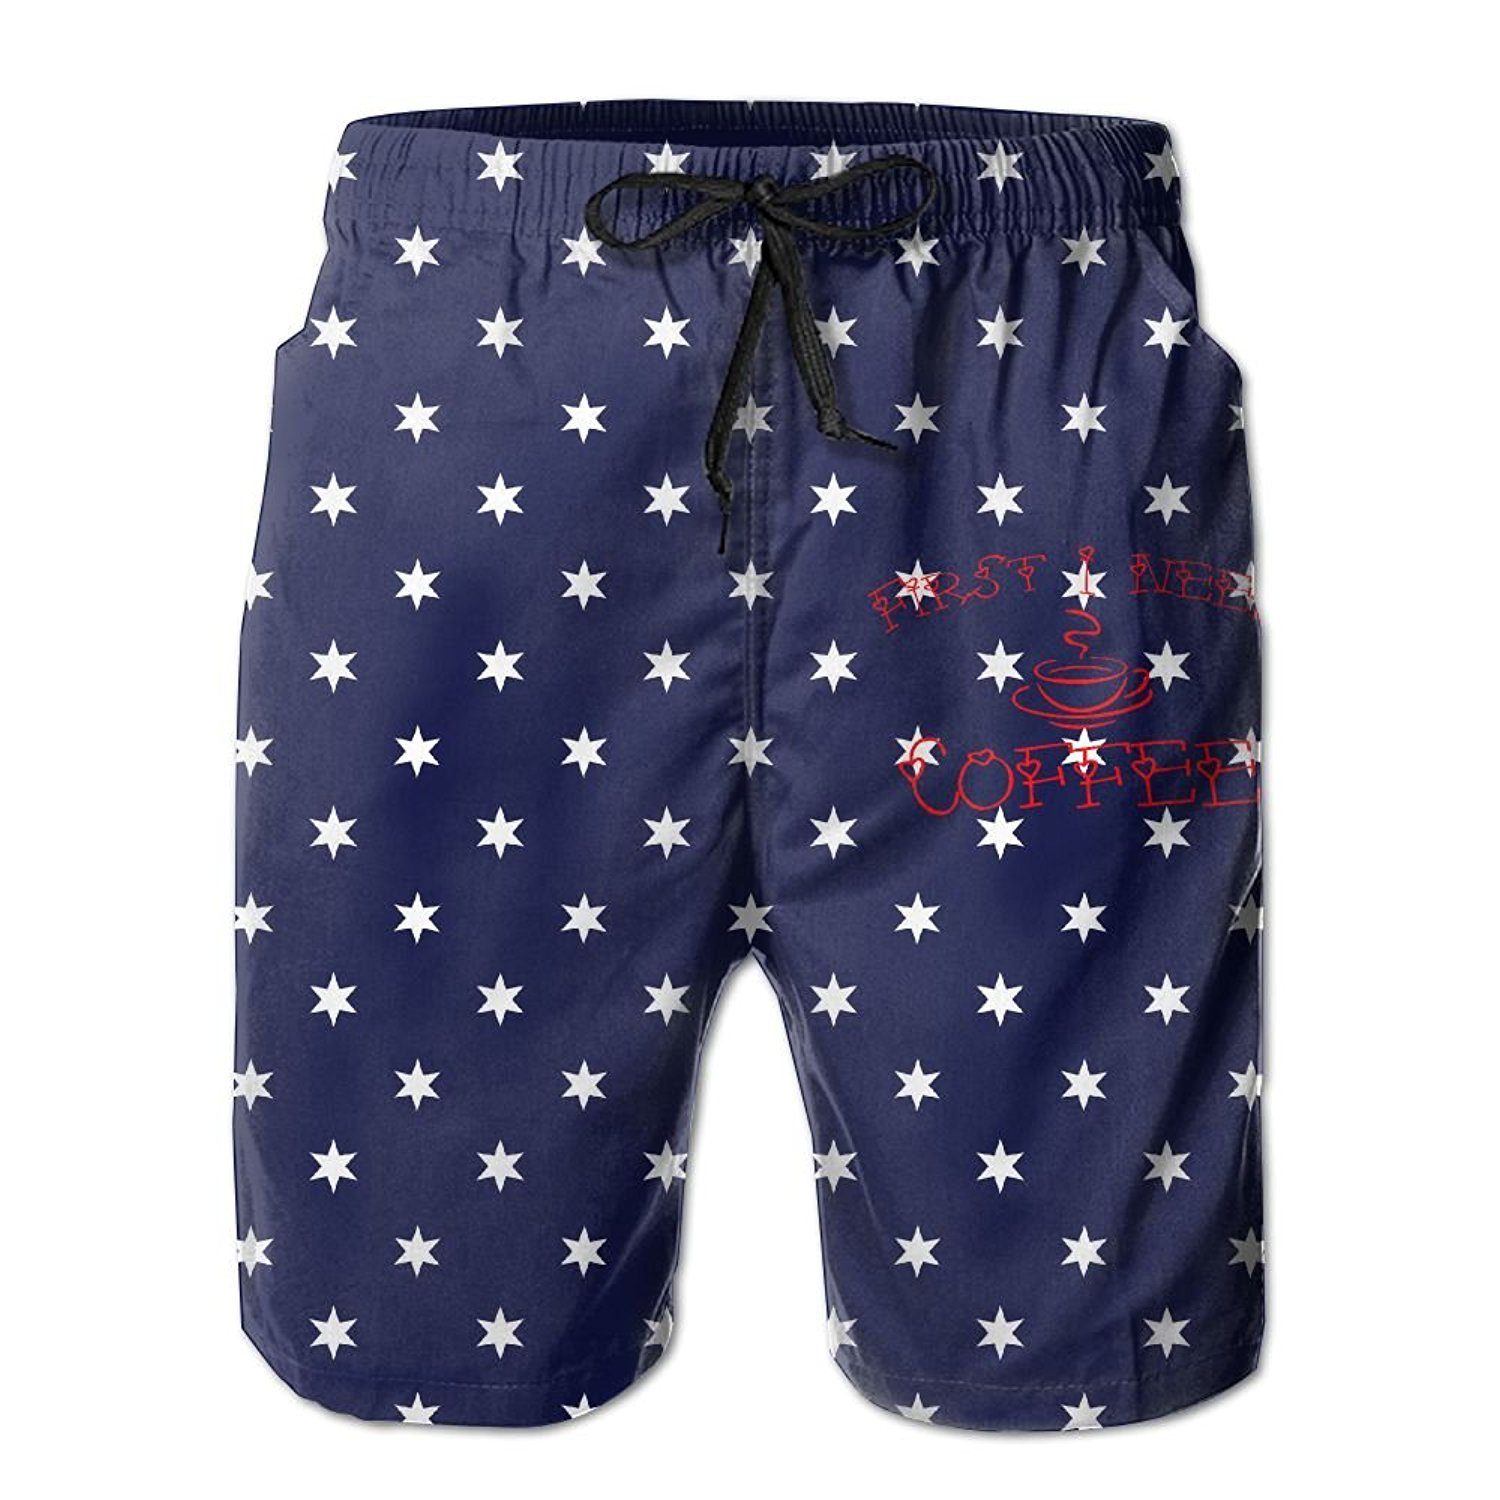 2eeb991186493 Get Quotations · Boyoung First I Need Coffee Vintage Men's Pocket Beach Shorts  Swim Trunks Casual Swim Shorts With